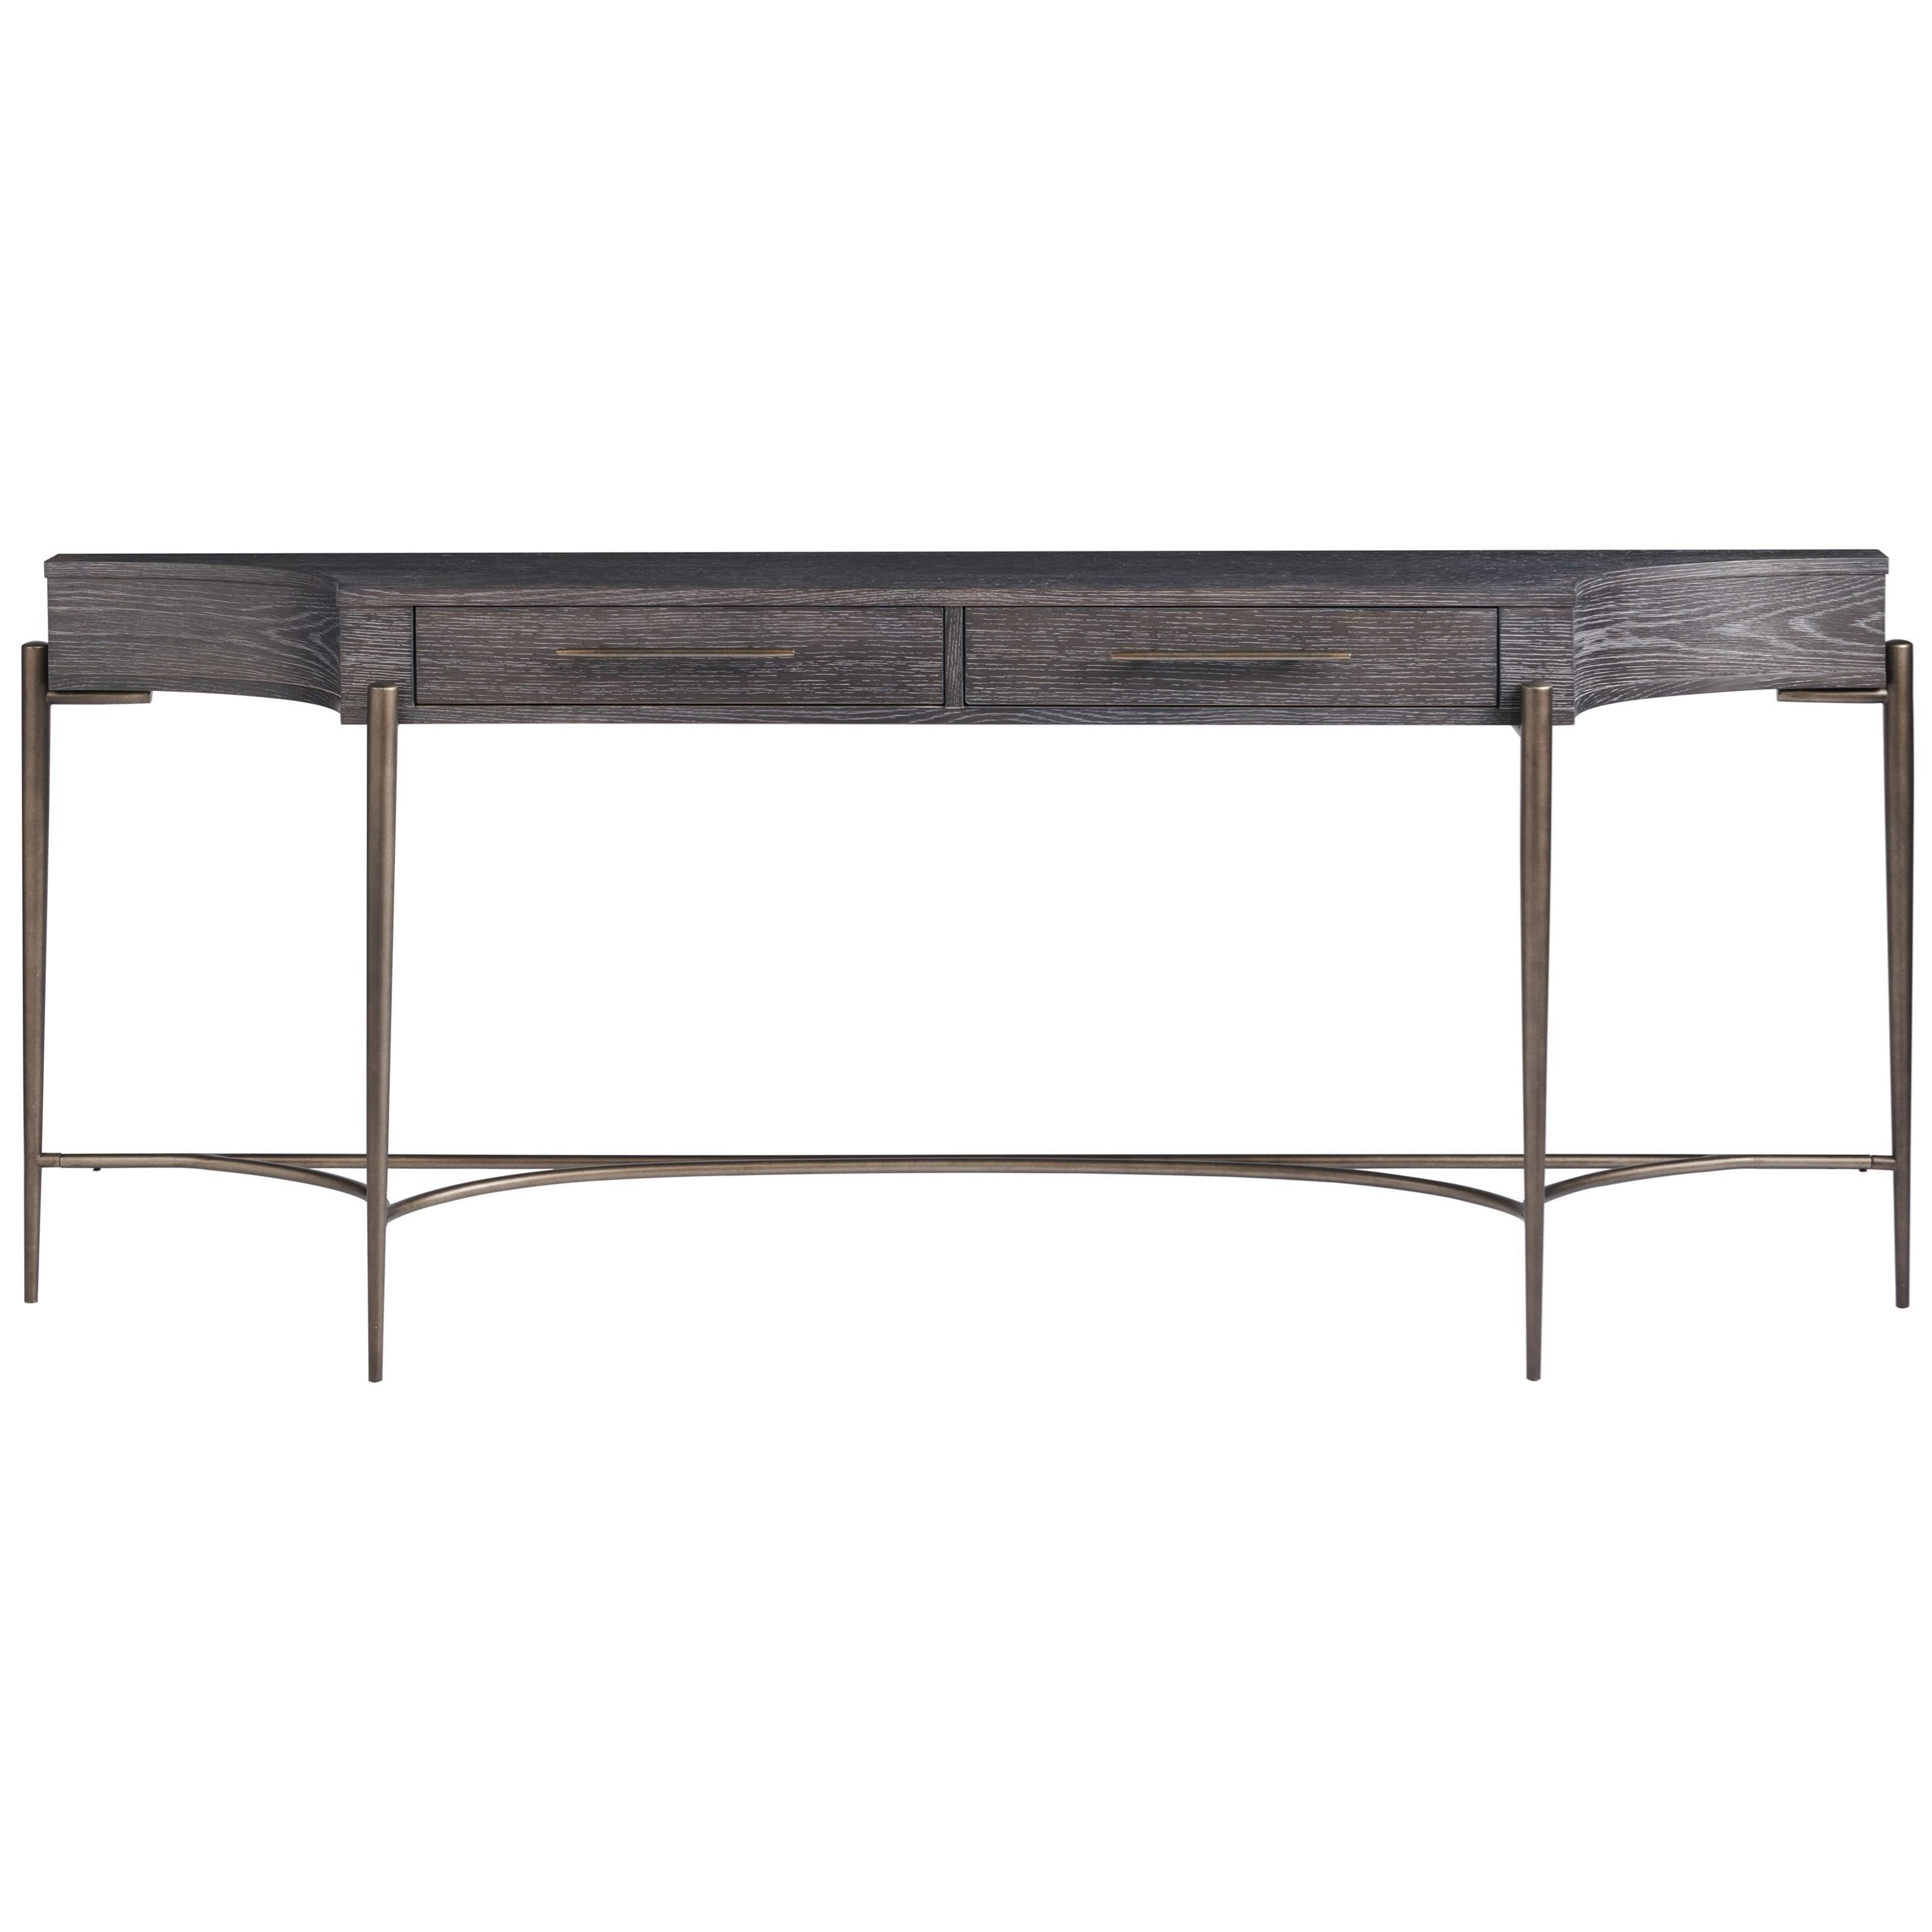 Curated Oslo Console Table by Universal at Baer's Furniture